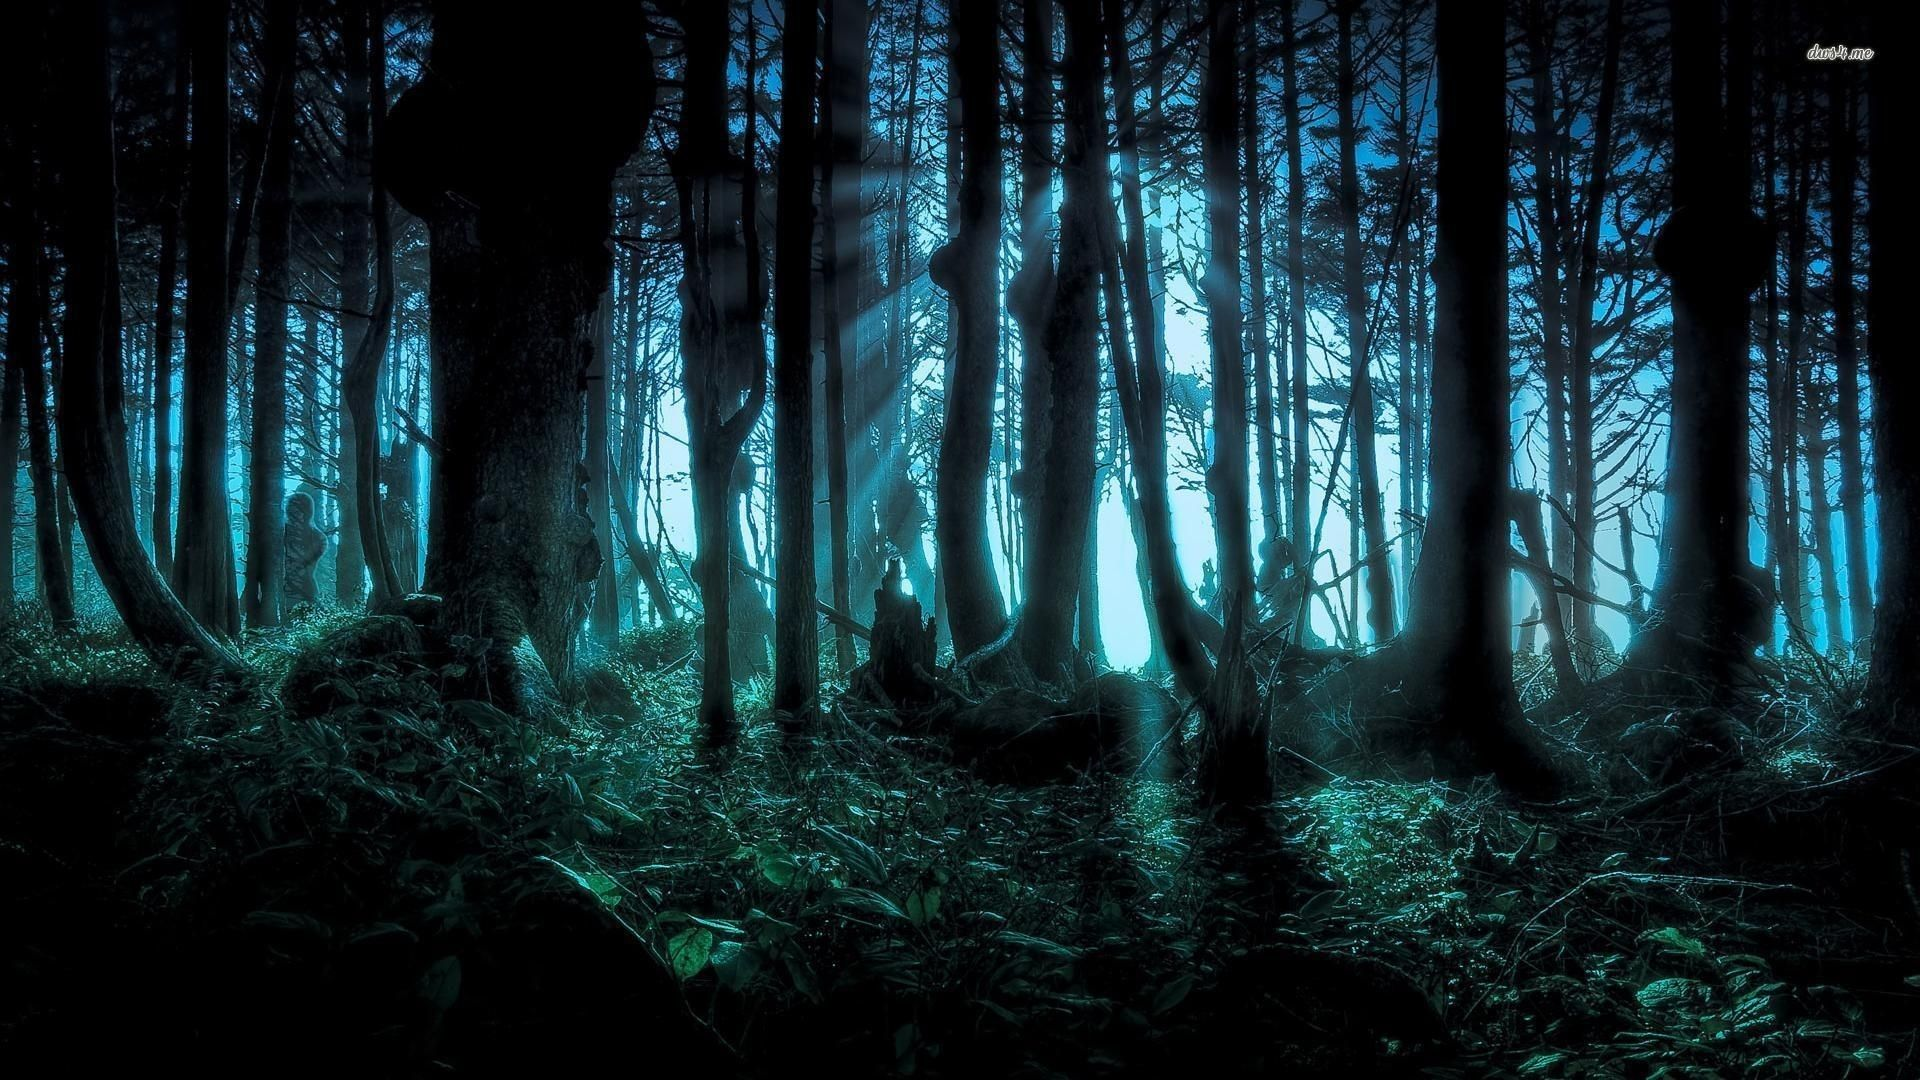 Beautiful Creepy Tree Wallpaper Forest wallpaper, Forest